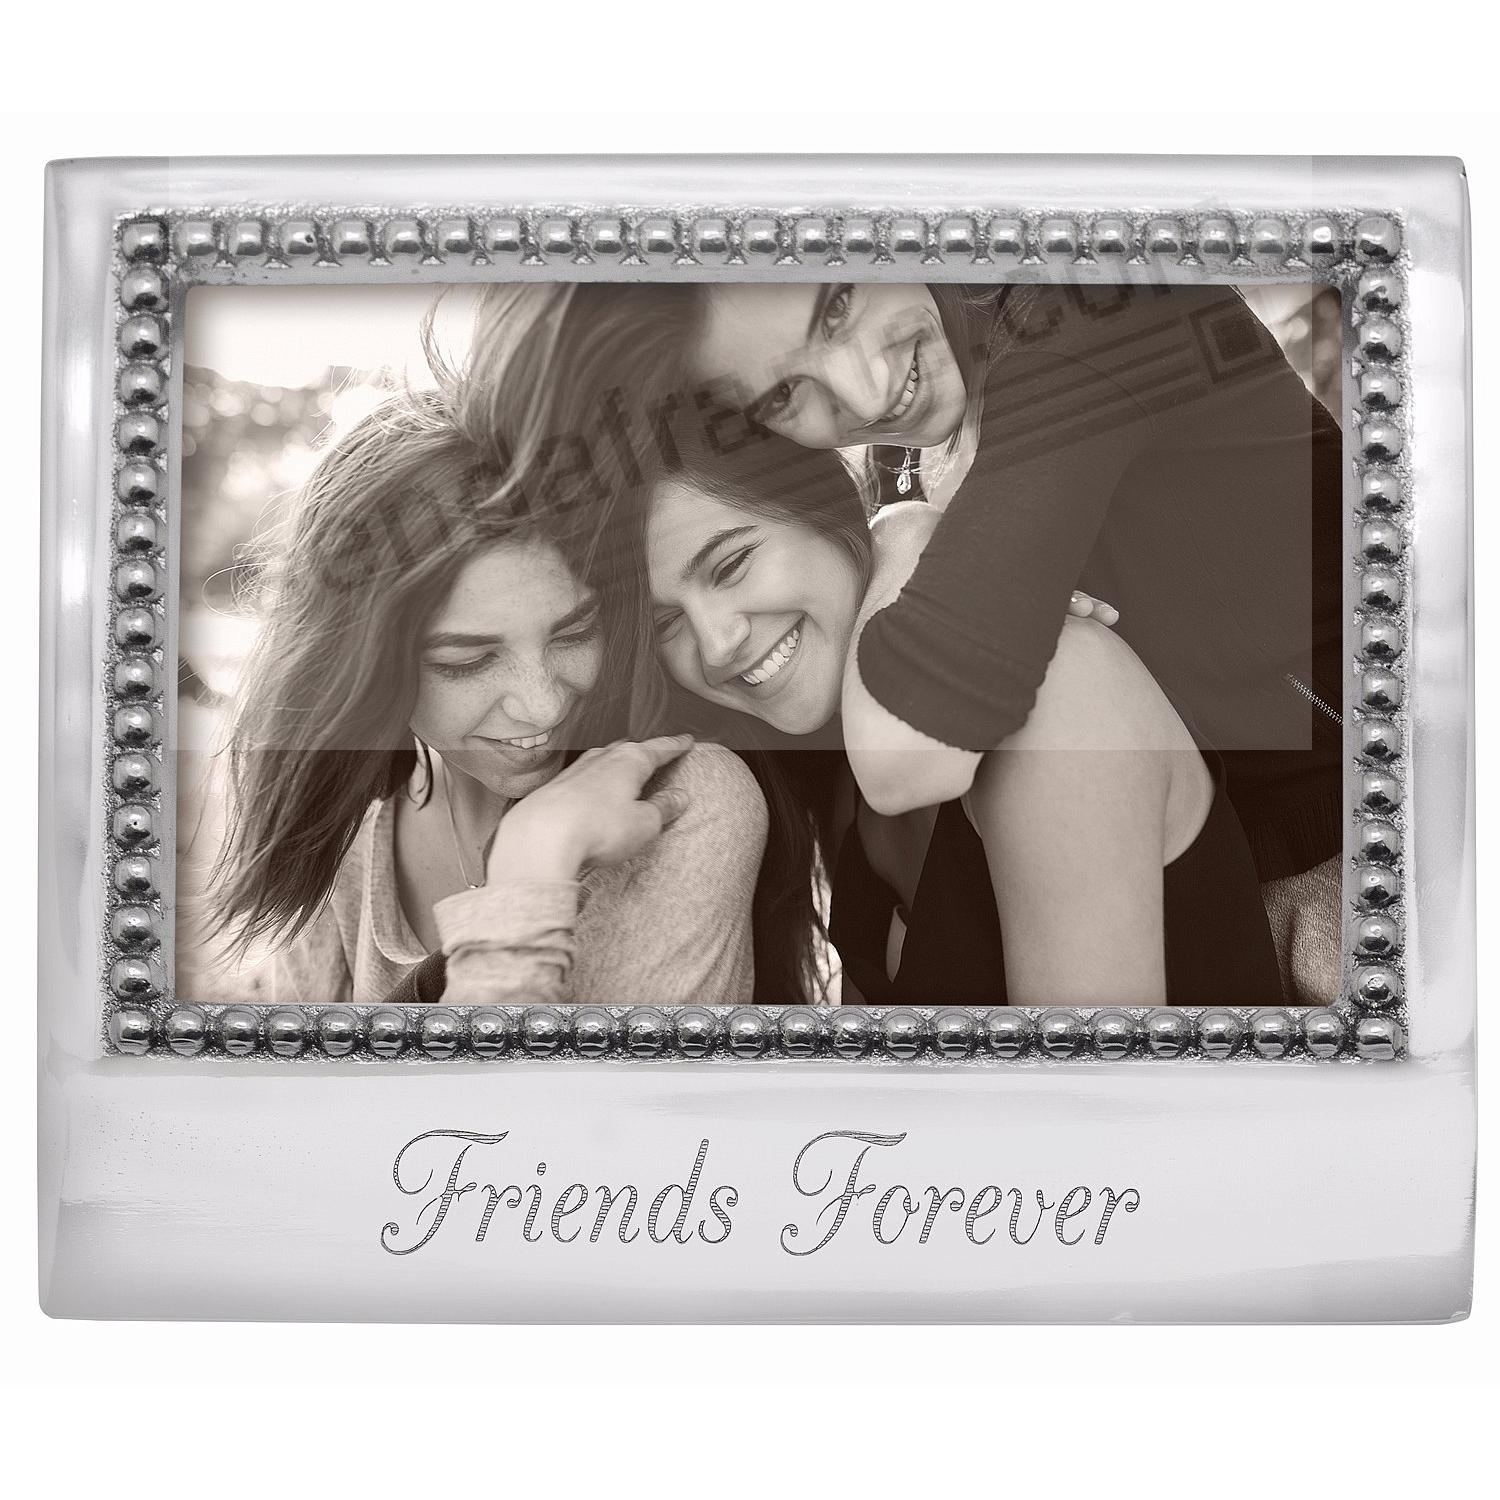 FRIENDS FOREVER Statement frame crafted by Mariposa®